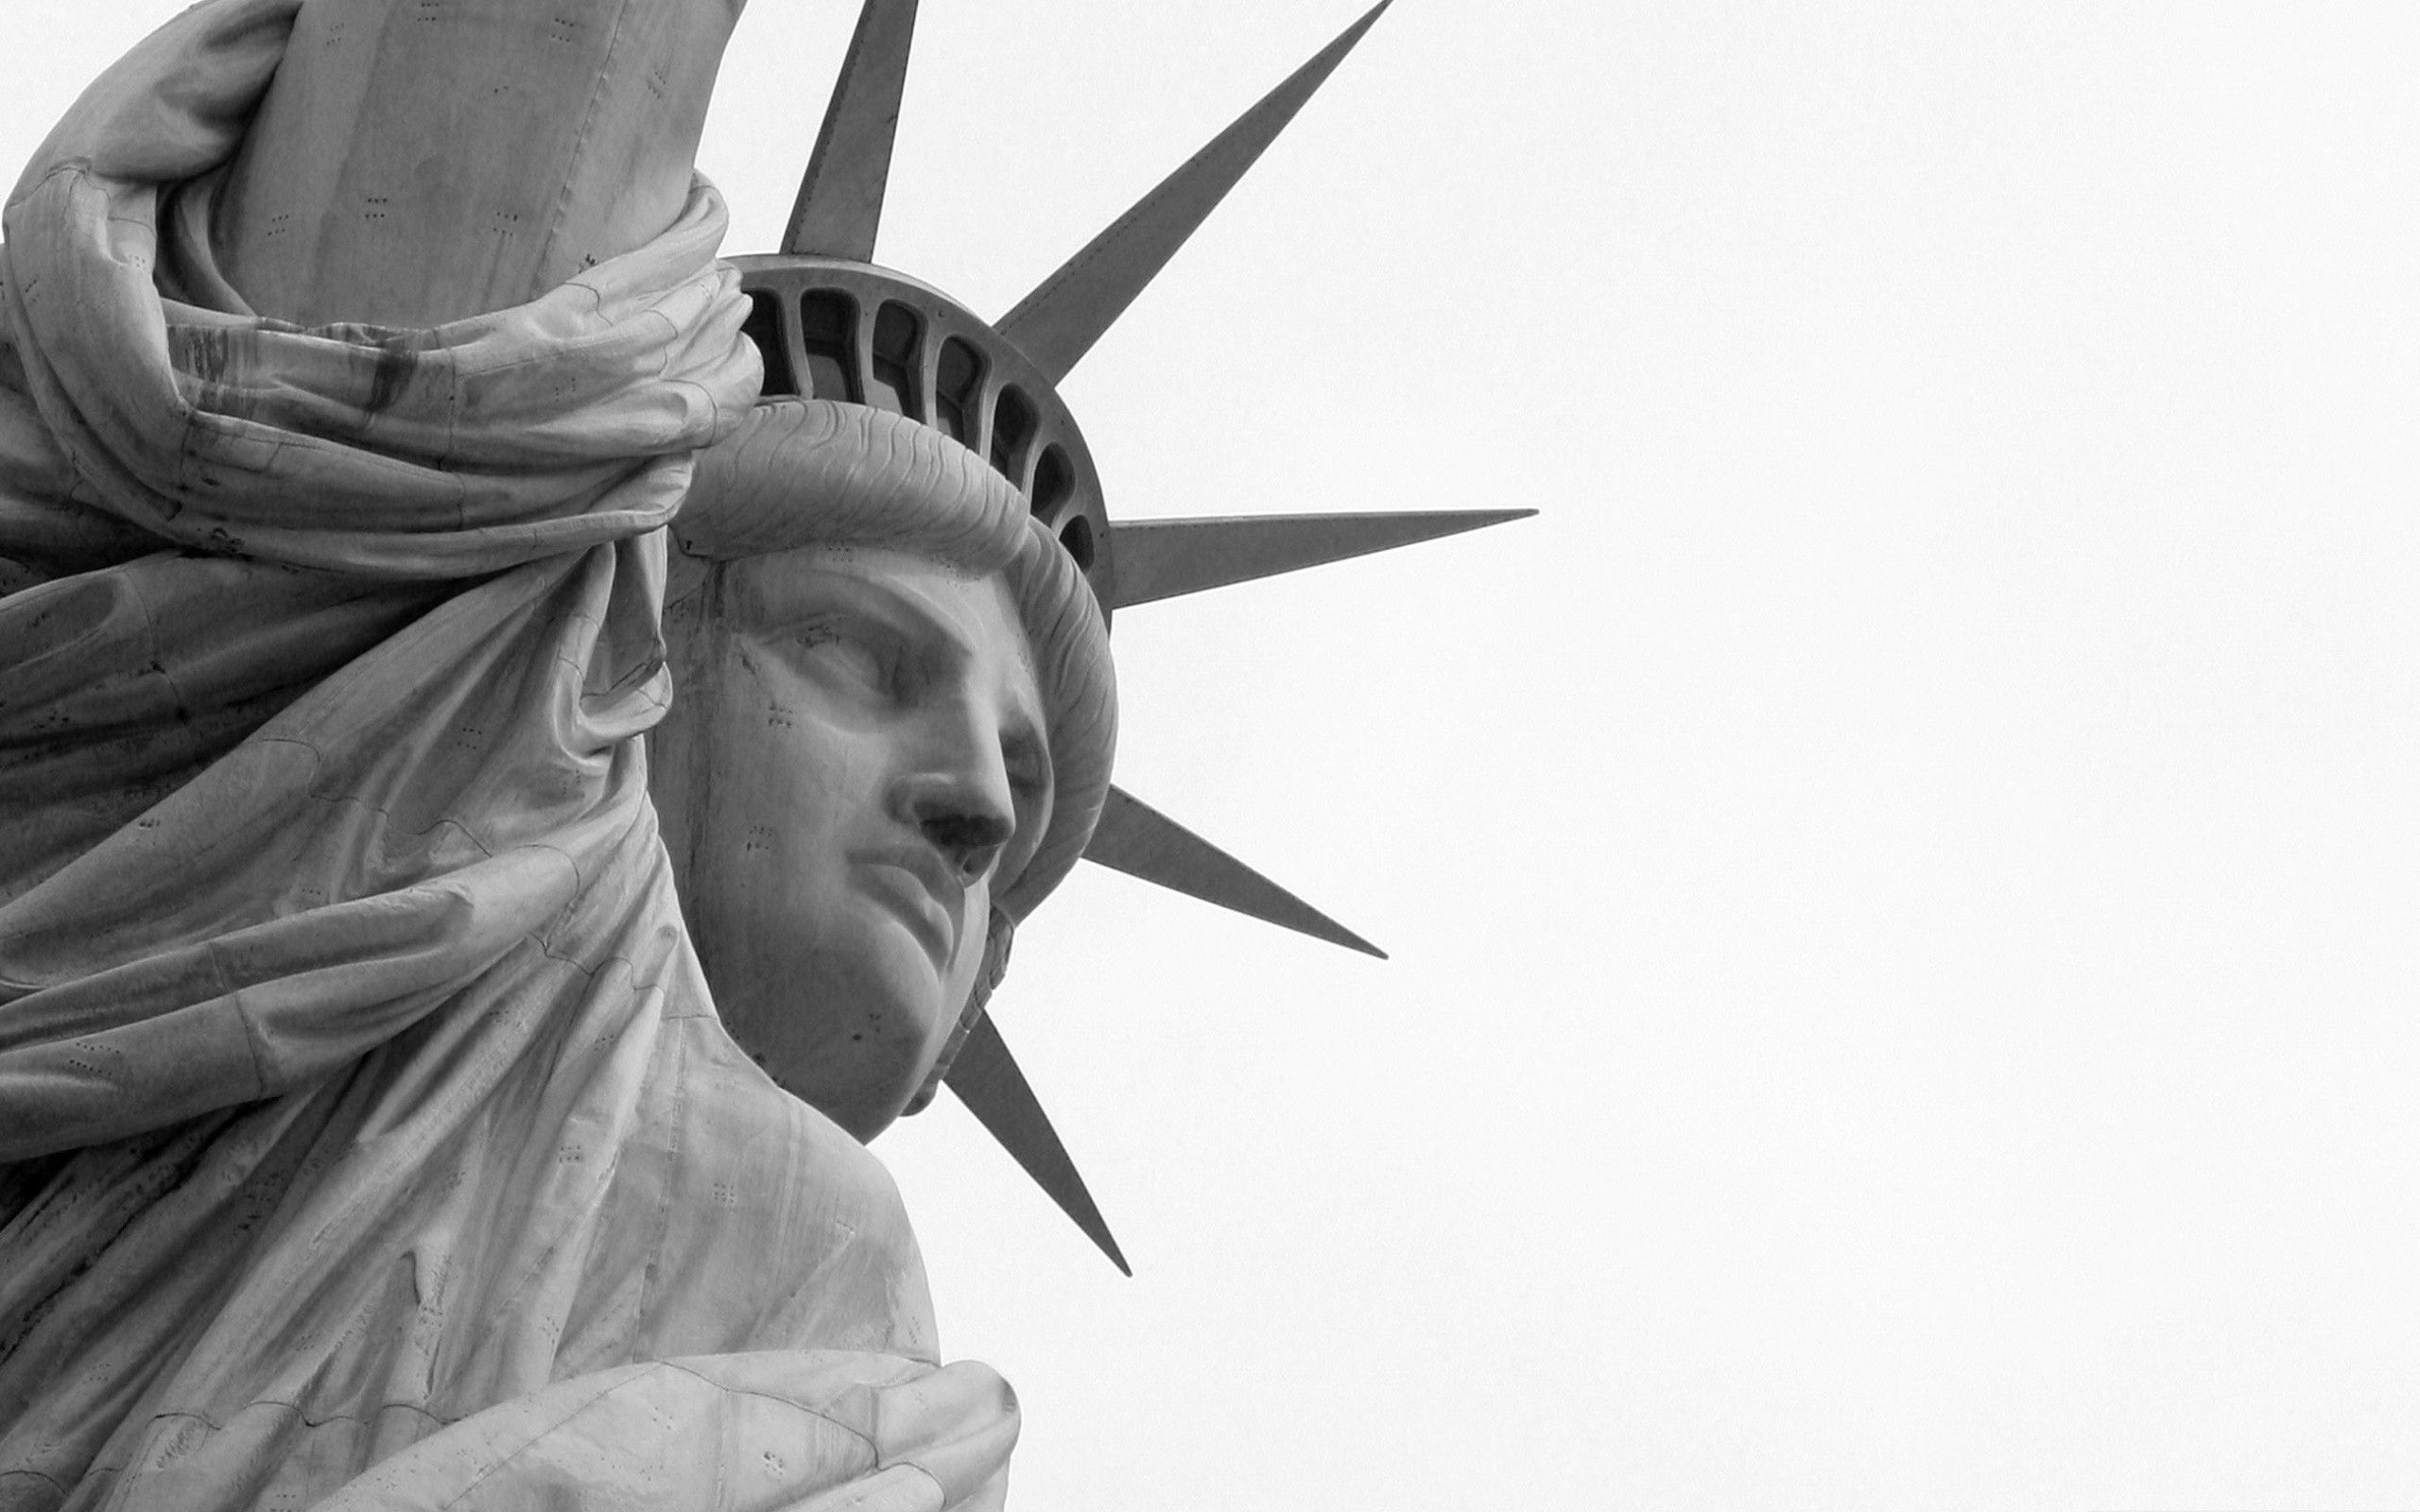 Wallpaper 2560x1600 Statue Of Liberty Stone Landmark Background